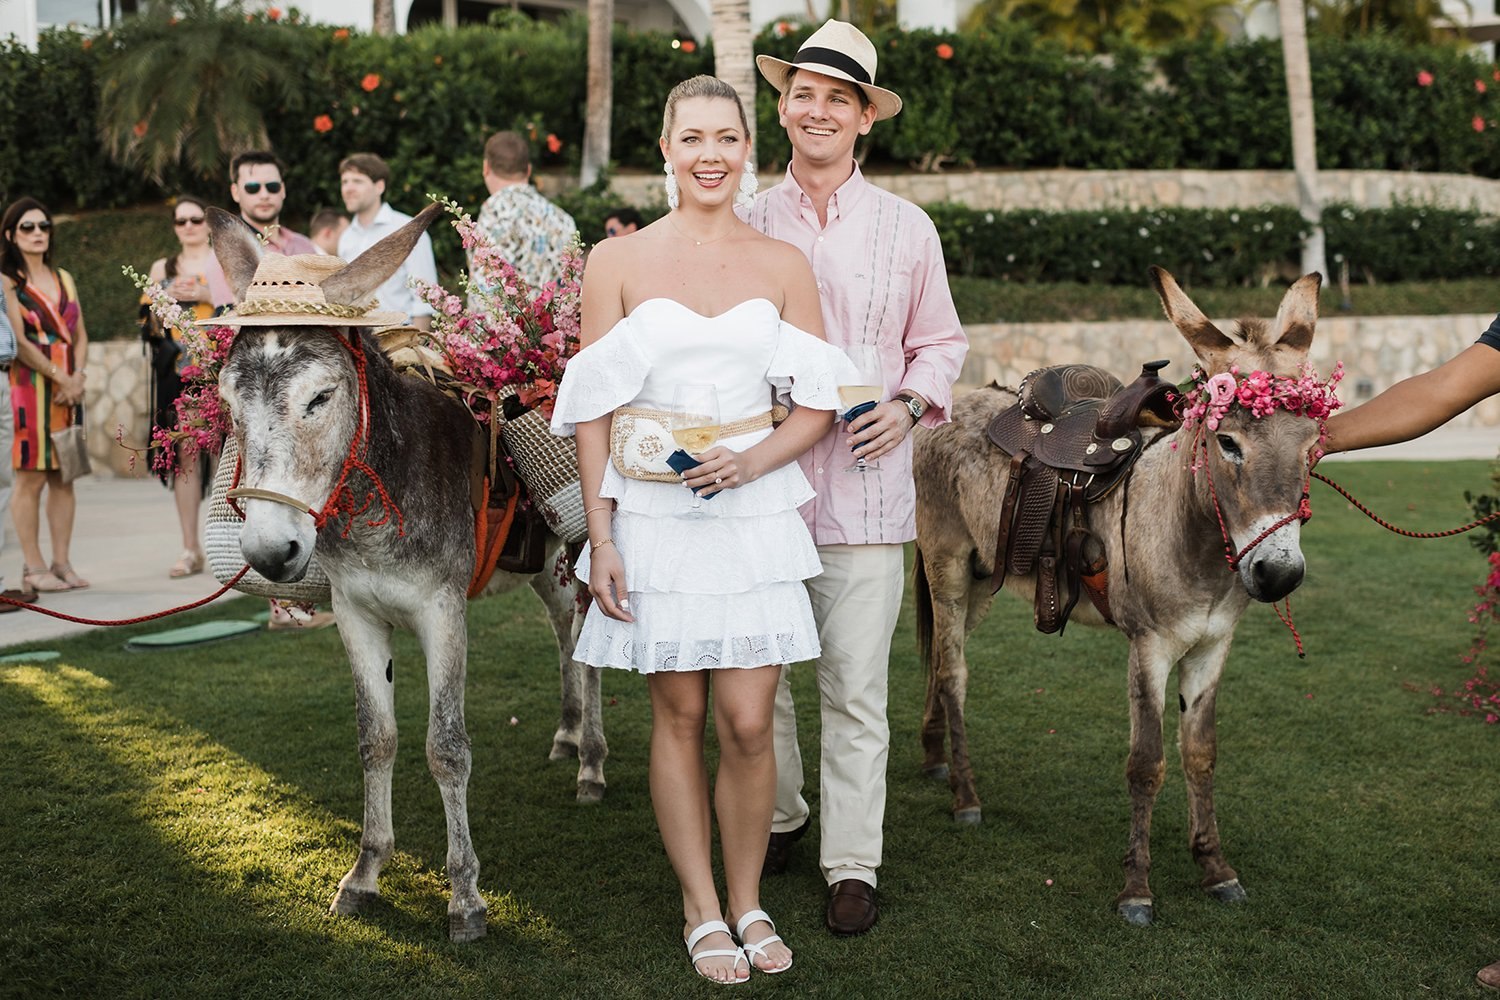 Houston Couple - Destination Wedding Welcome Party with Beer Burros